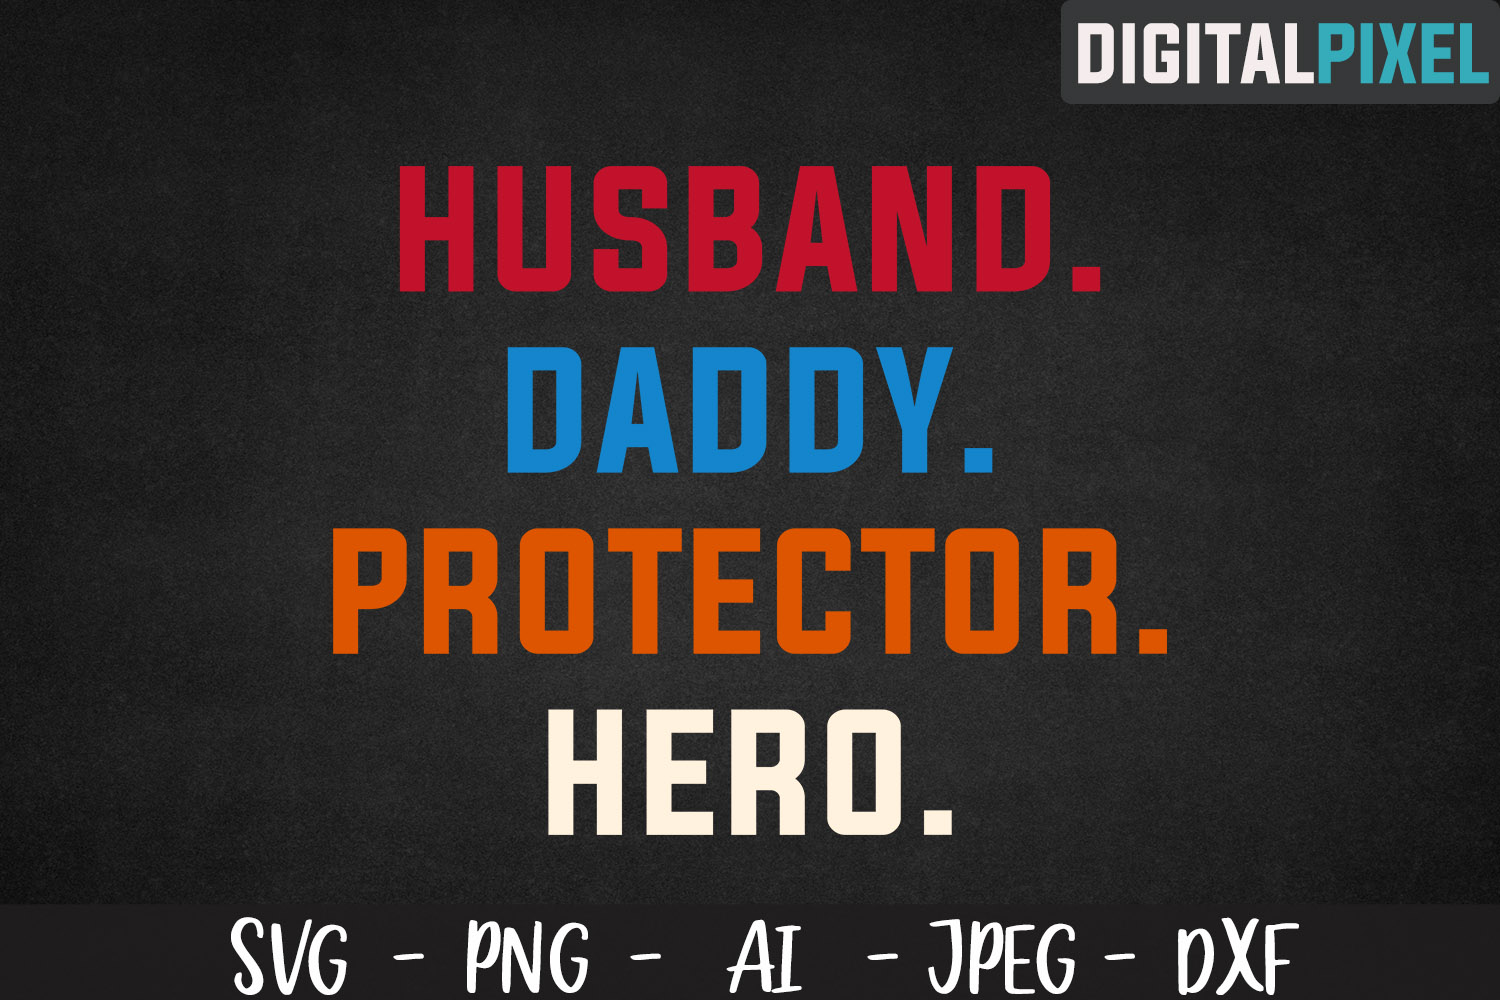 Husband Daddy Protector Hero SVG PNG DXF Circut Cut example image 2